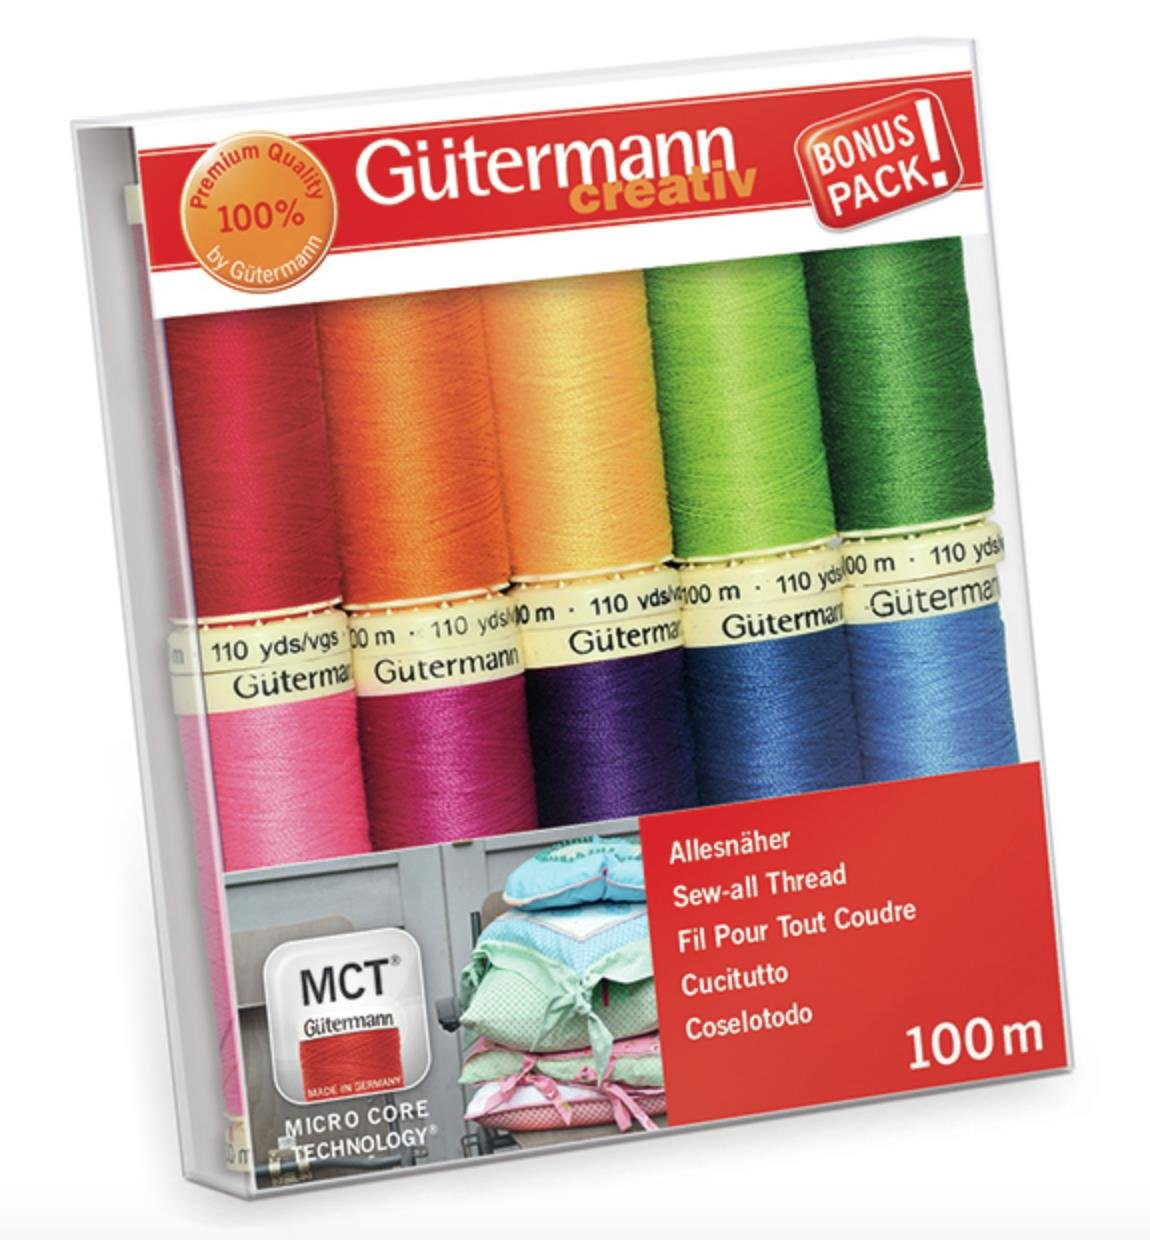 Gutermann Sew-All Colorful Set 100% Polyester Thread Set 10 x 100m Reels GUT_734006-3